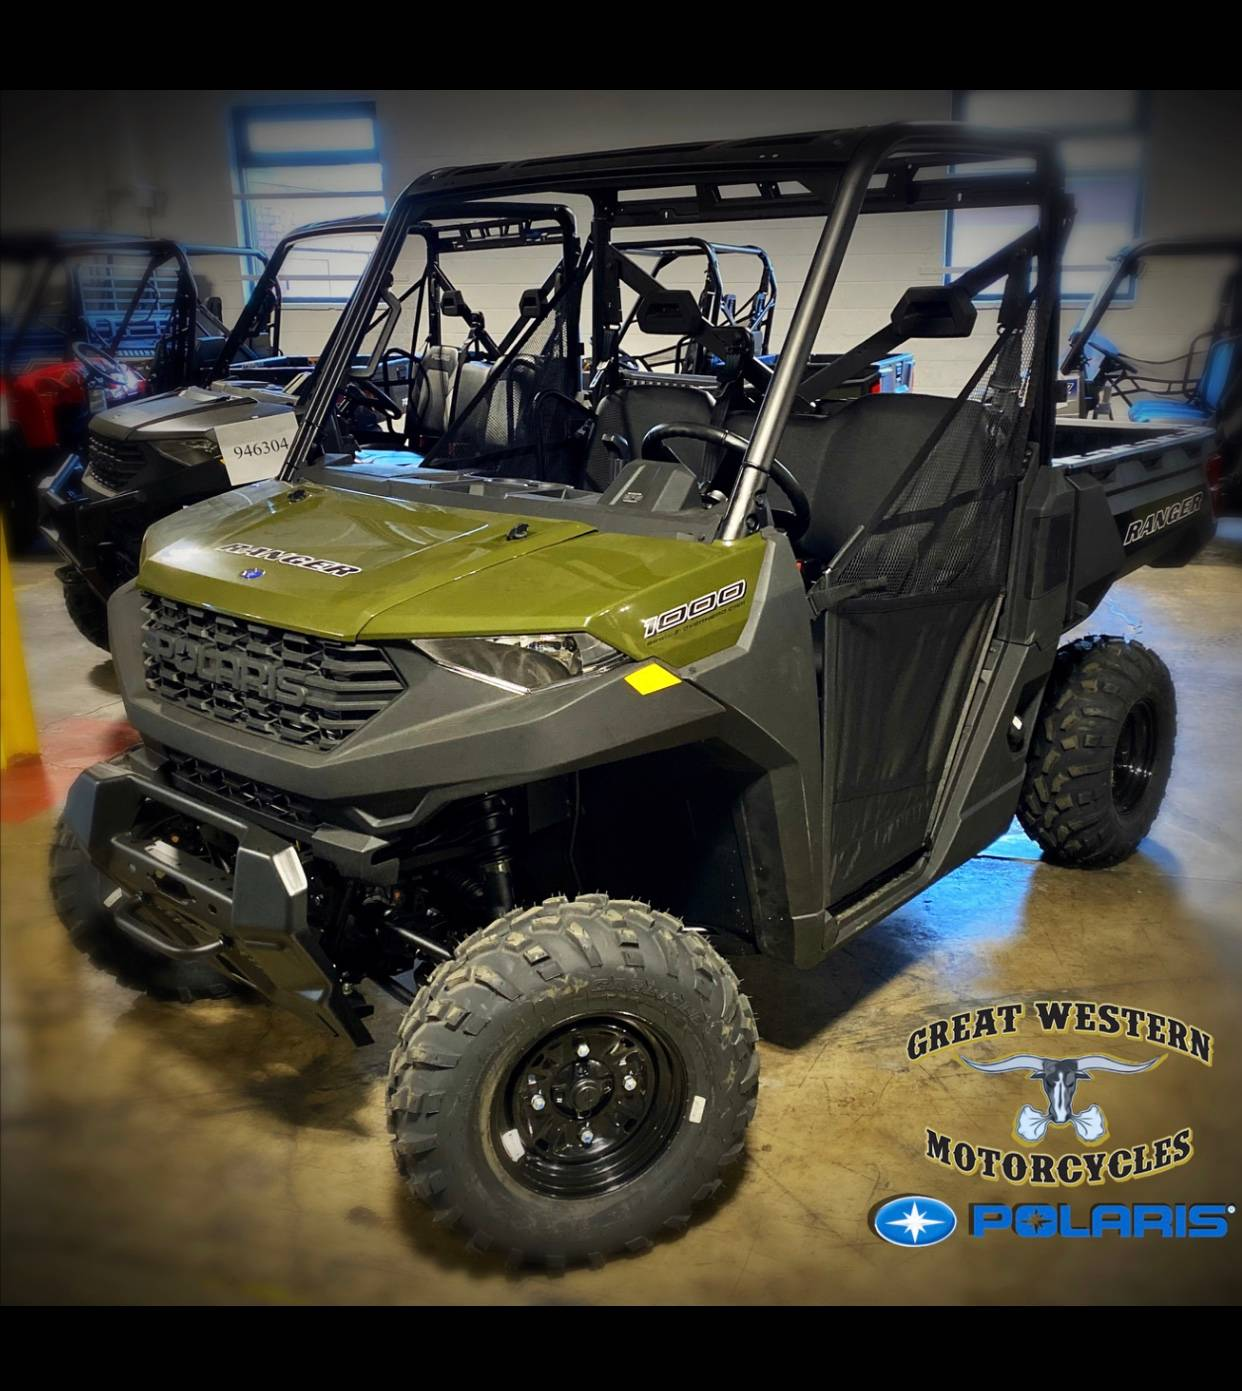 2020 Polaris Ranger 1000 EPS in Statesville, North Carolina - Photo 1